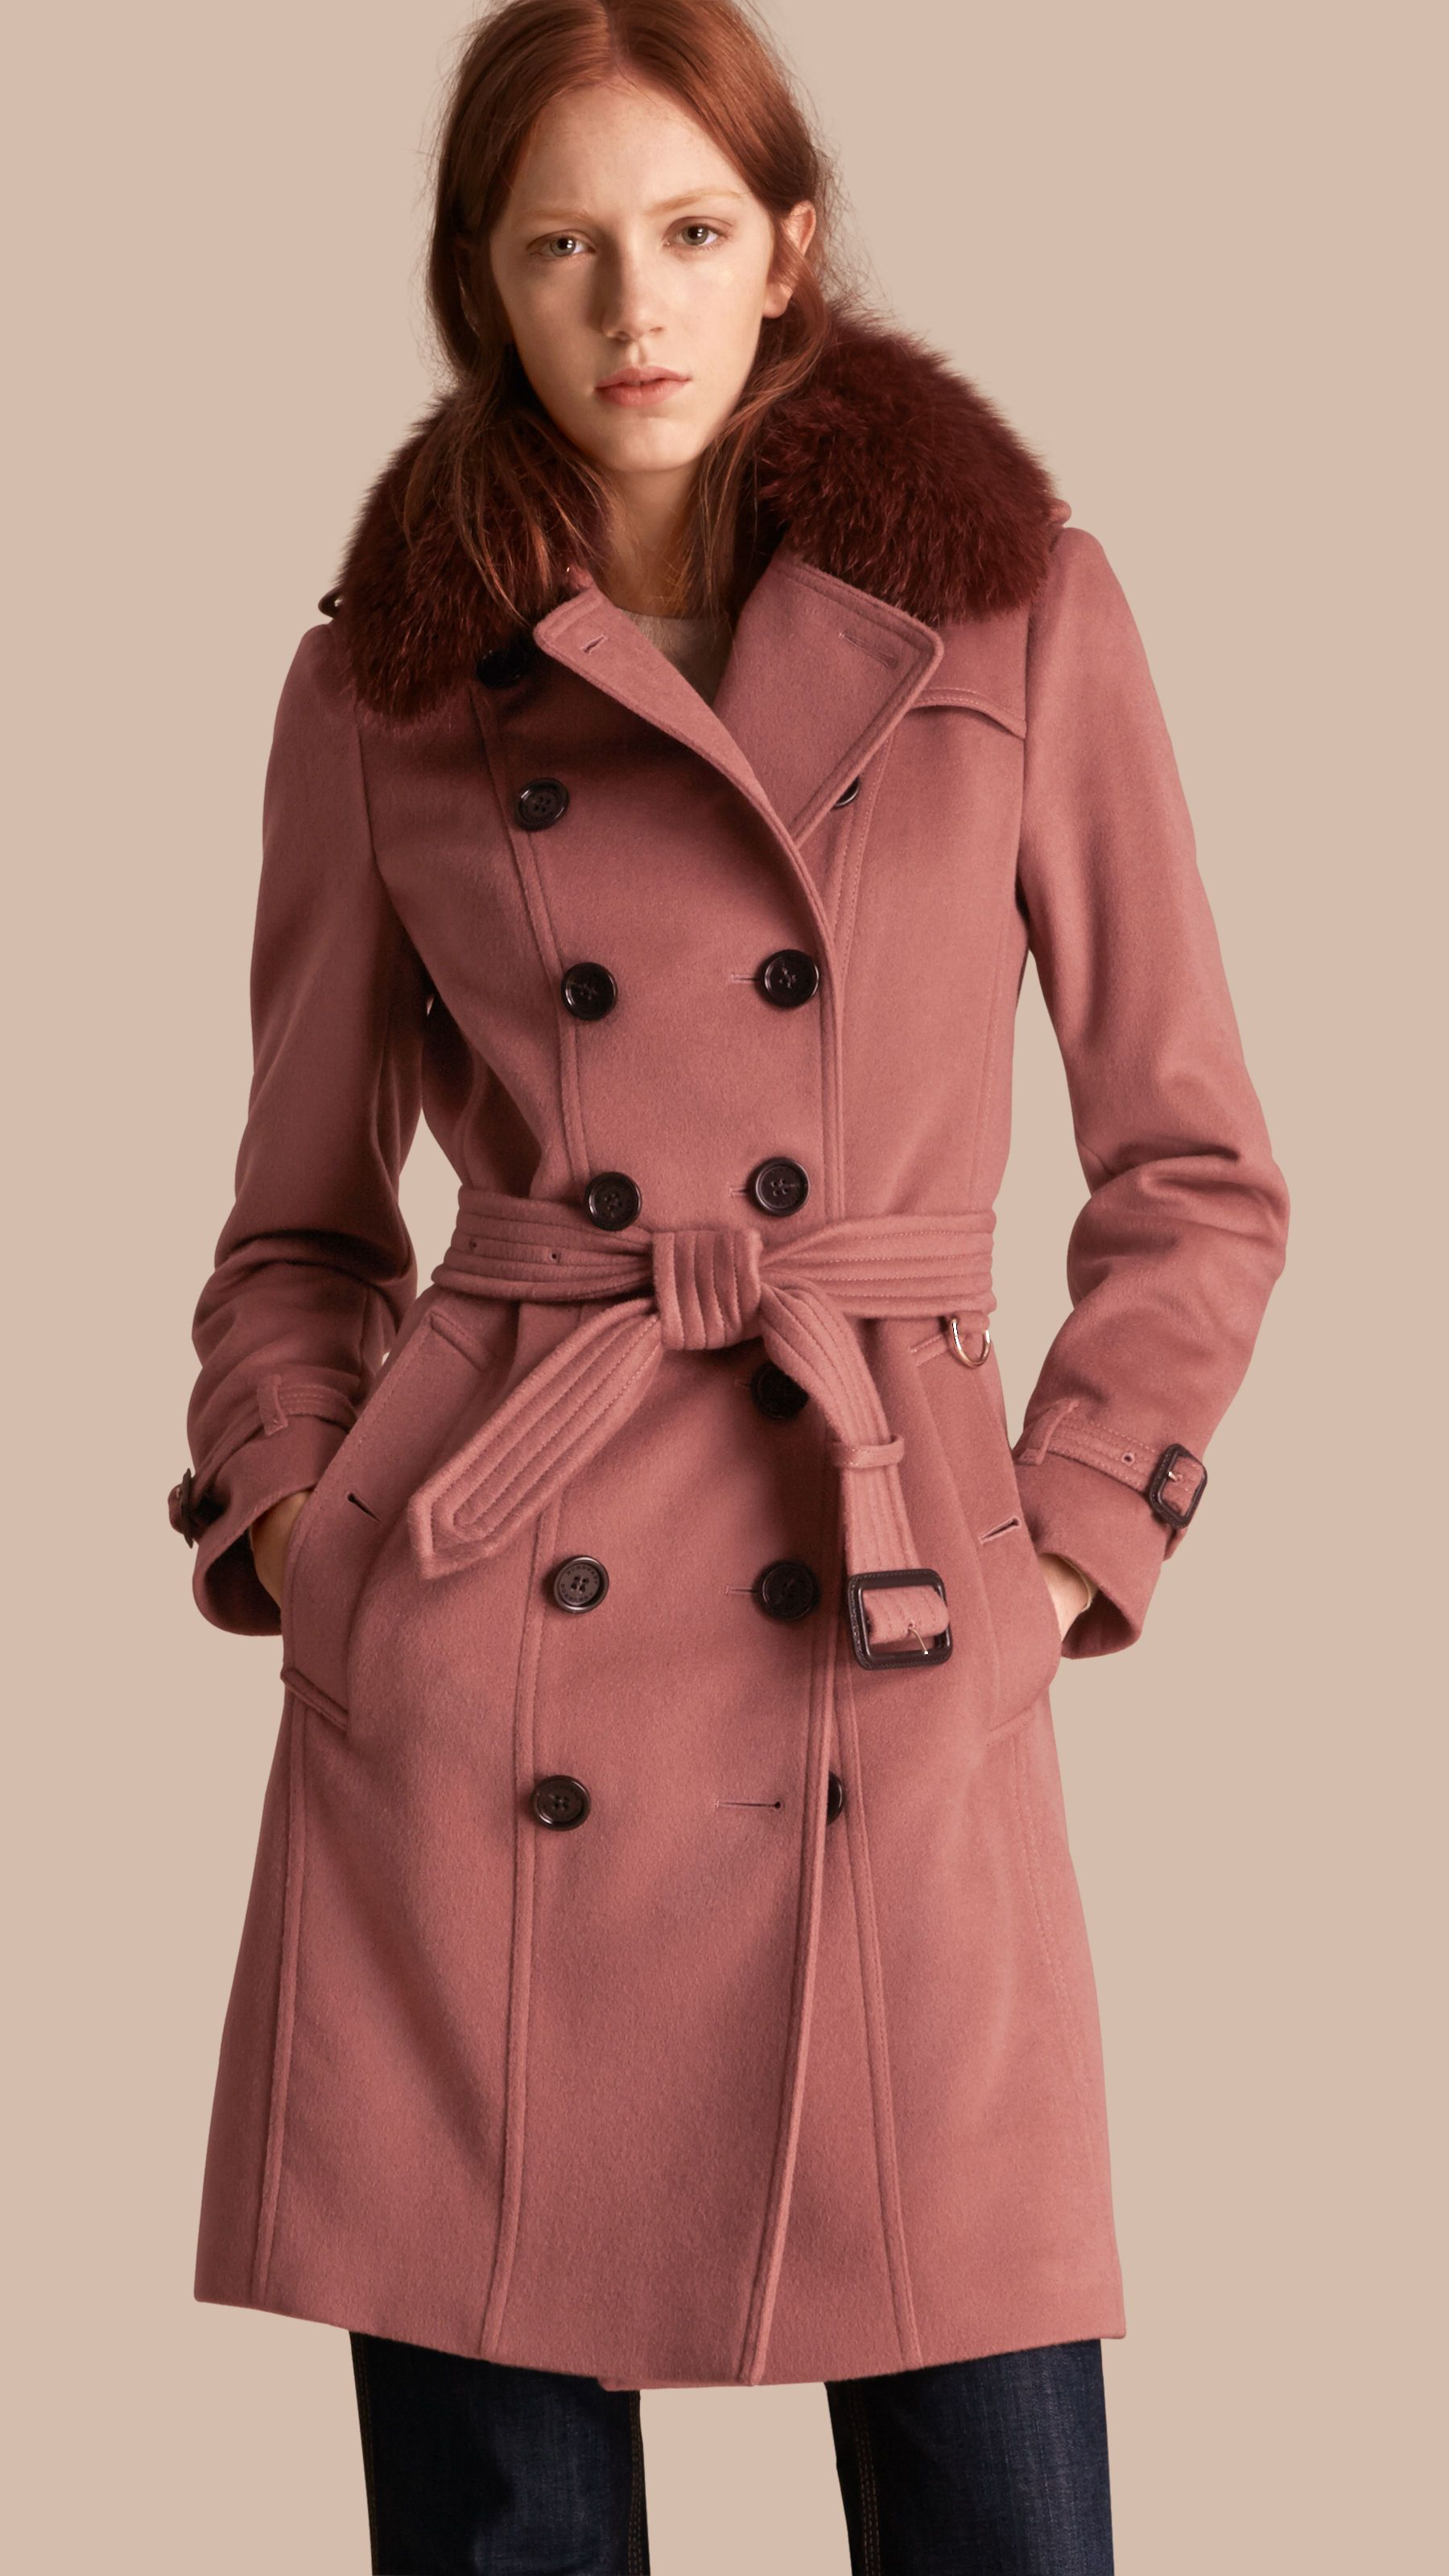 ef6bb5dea7029 Wool Cashmere Trench Coat with Detachable Fur Collar Antique Rose